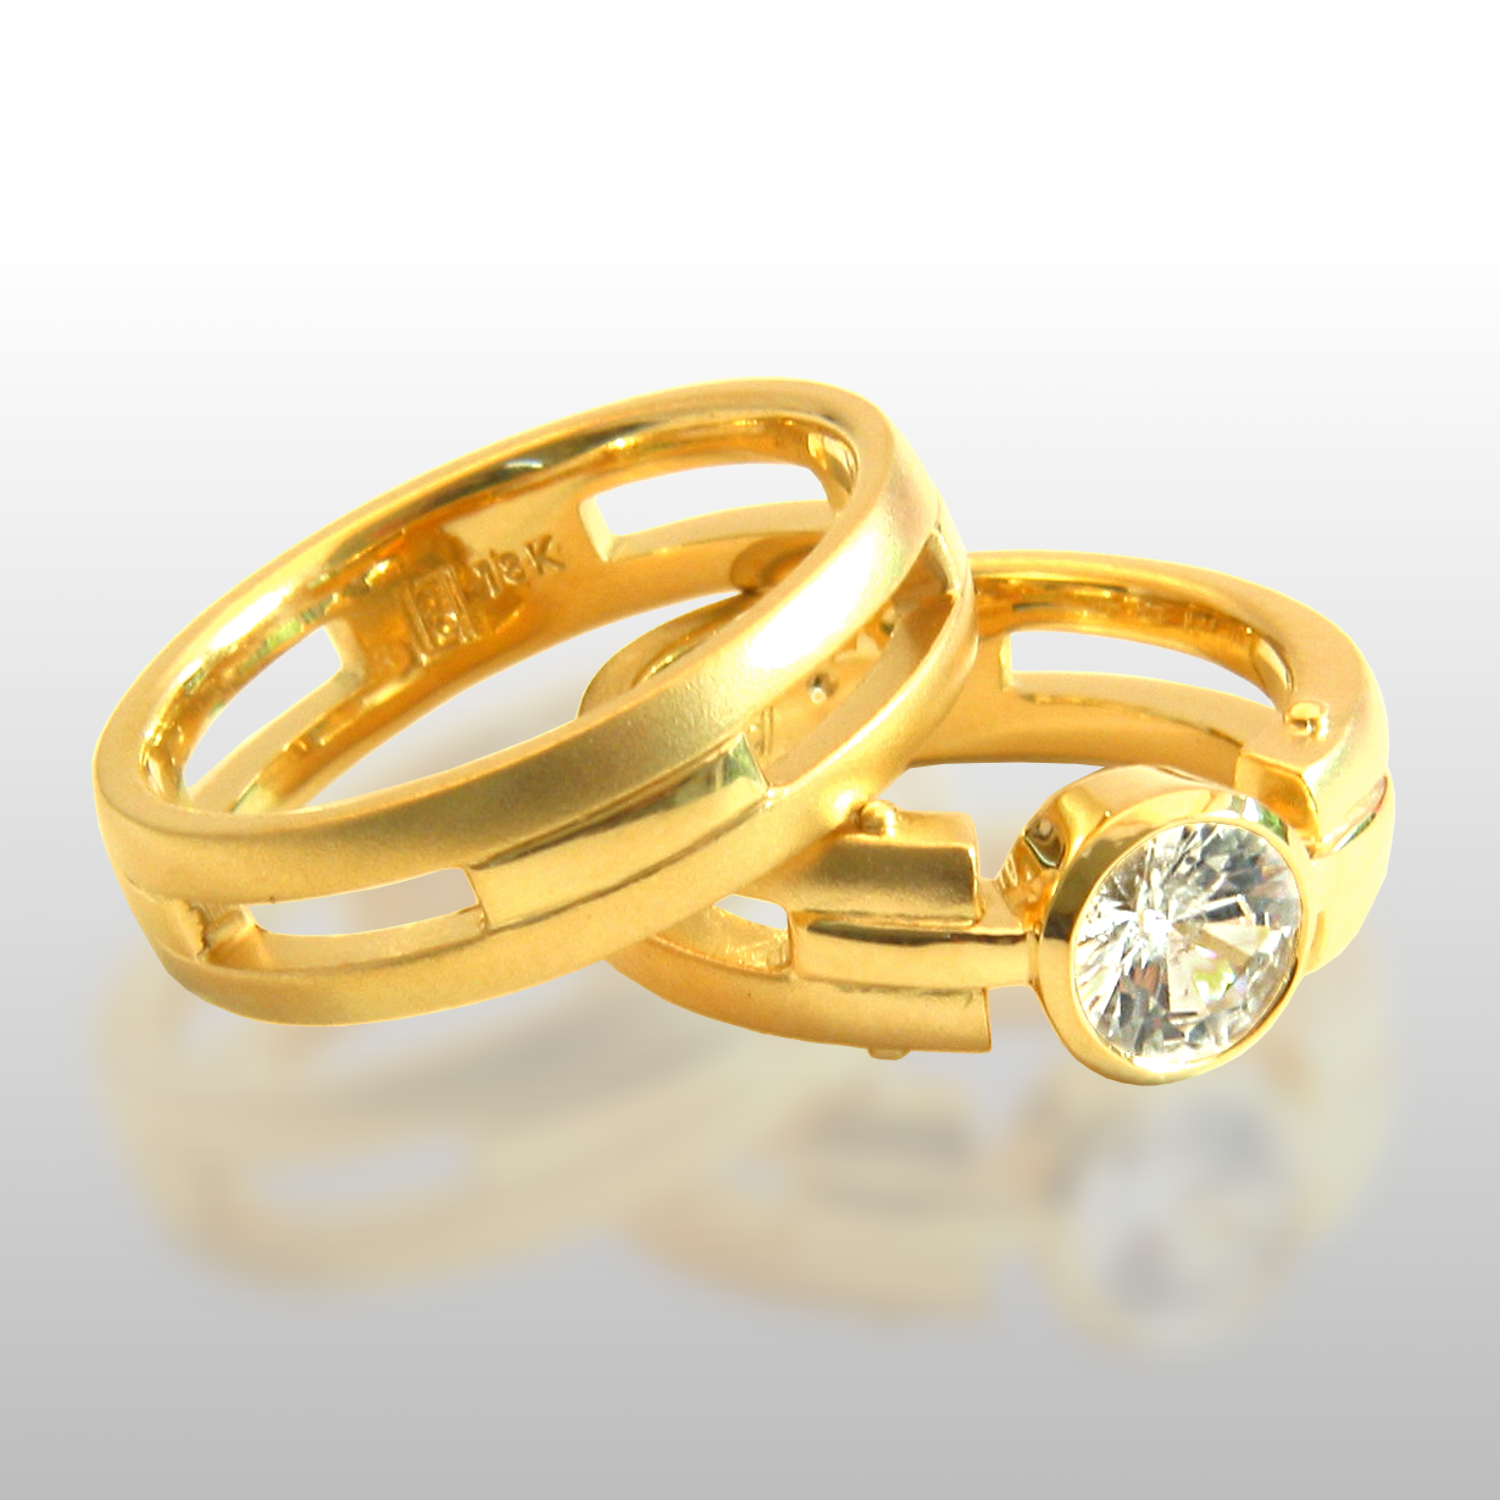 His and hers matching contemporary 18k gold wedding band set 'Millennium' with a 1ct diamond by Pratima Design Fine Art Jewelry